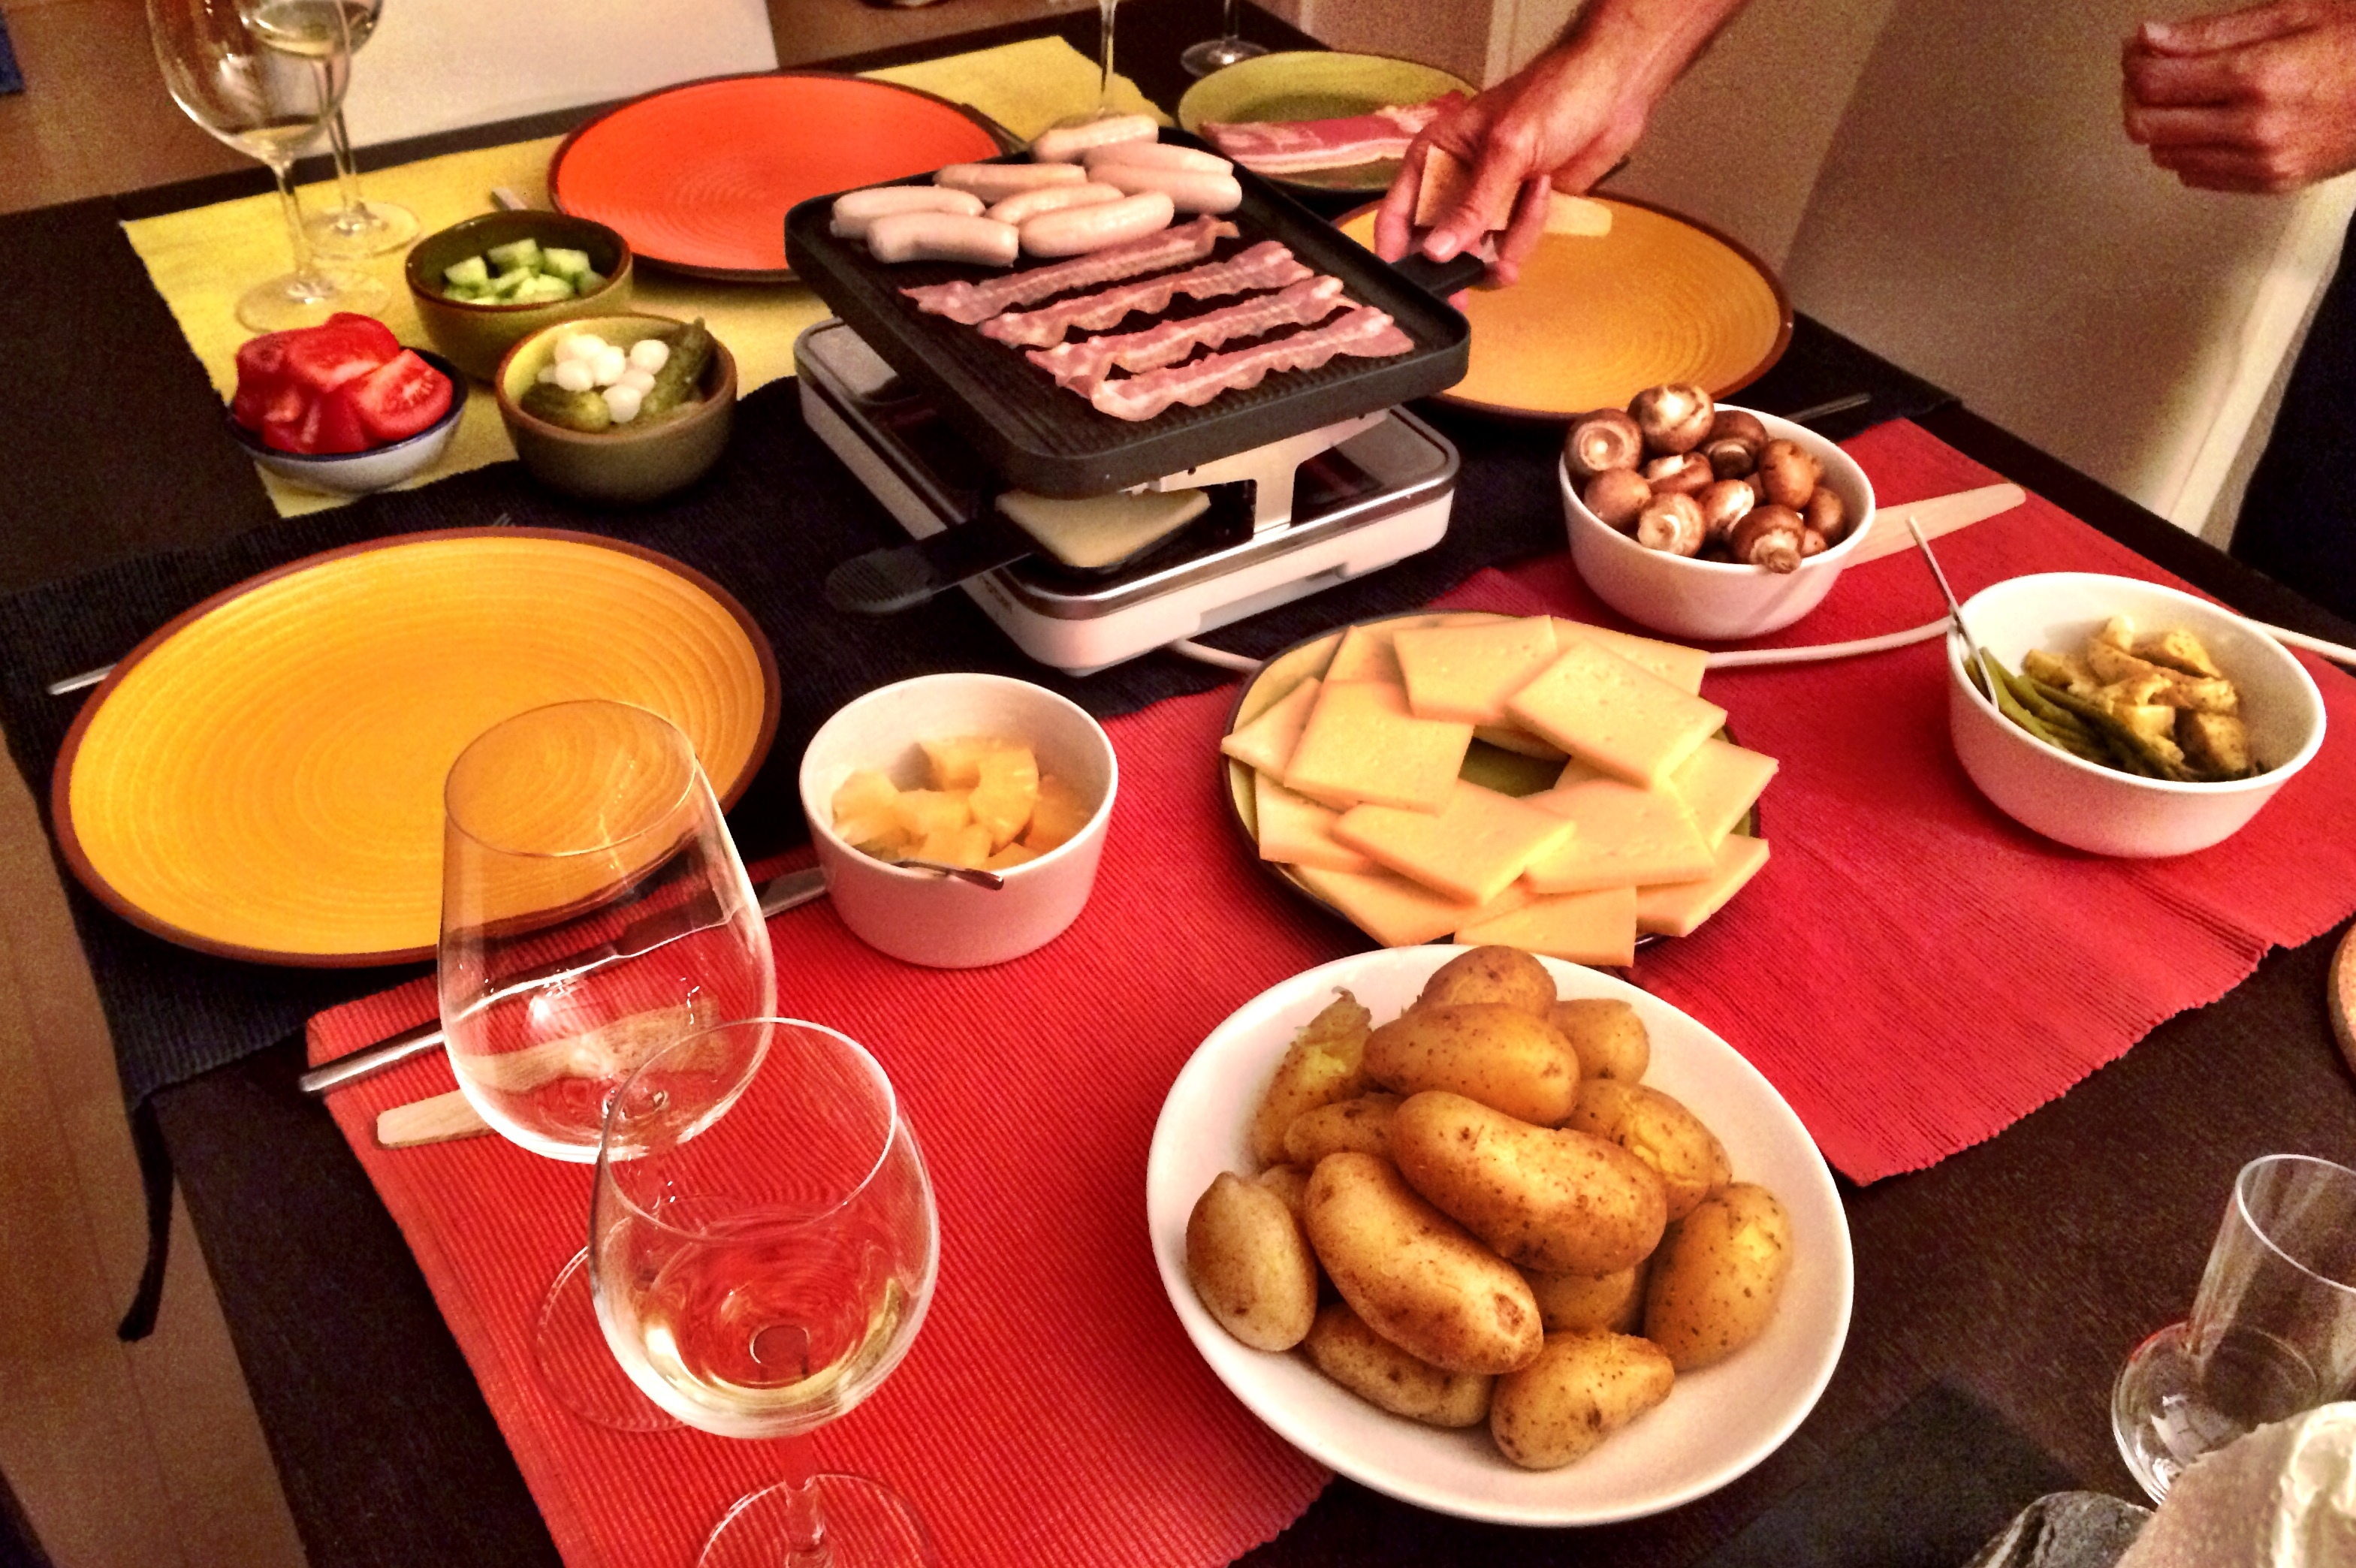 raclette – the heart stopping cheese thefidgetyfoodie